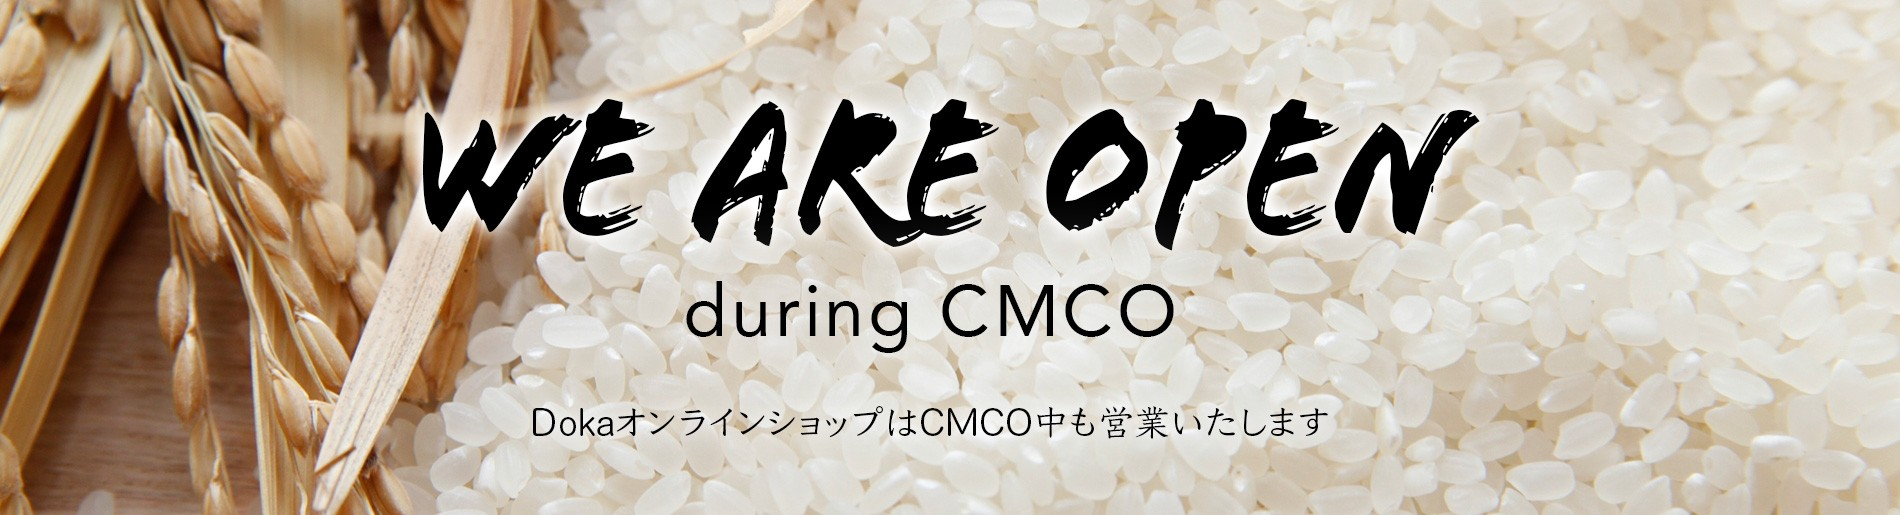 We are open during CMCO